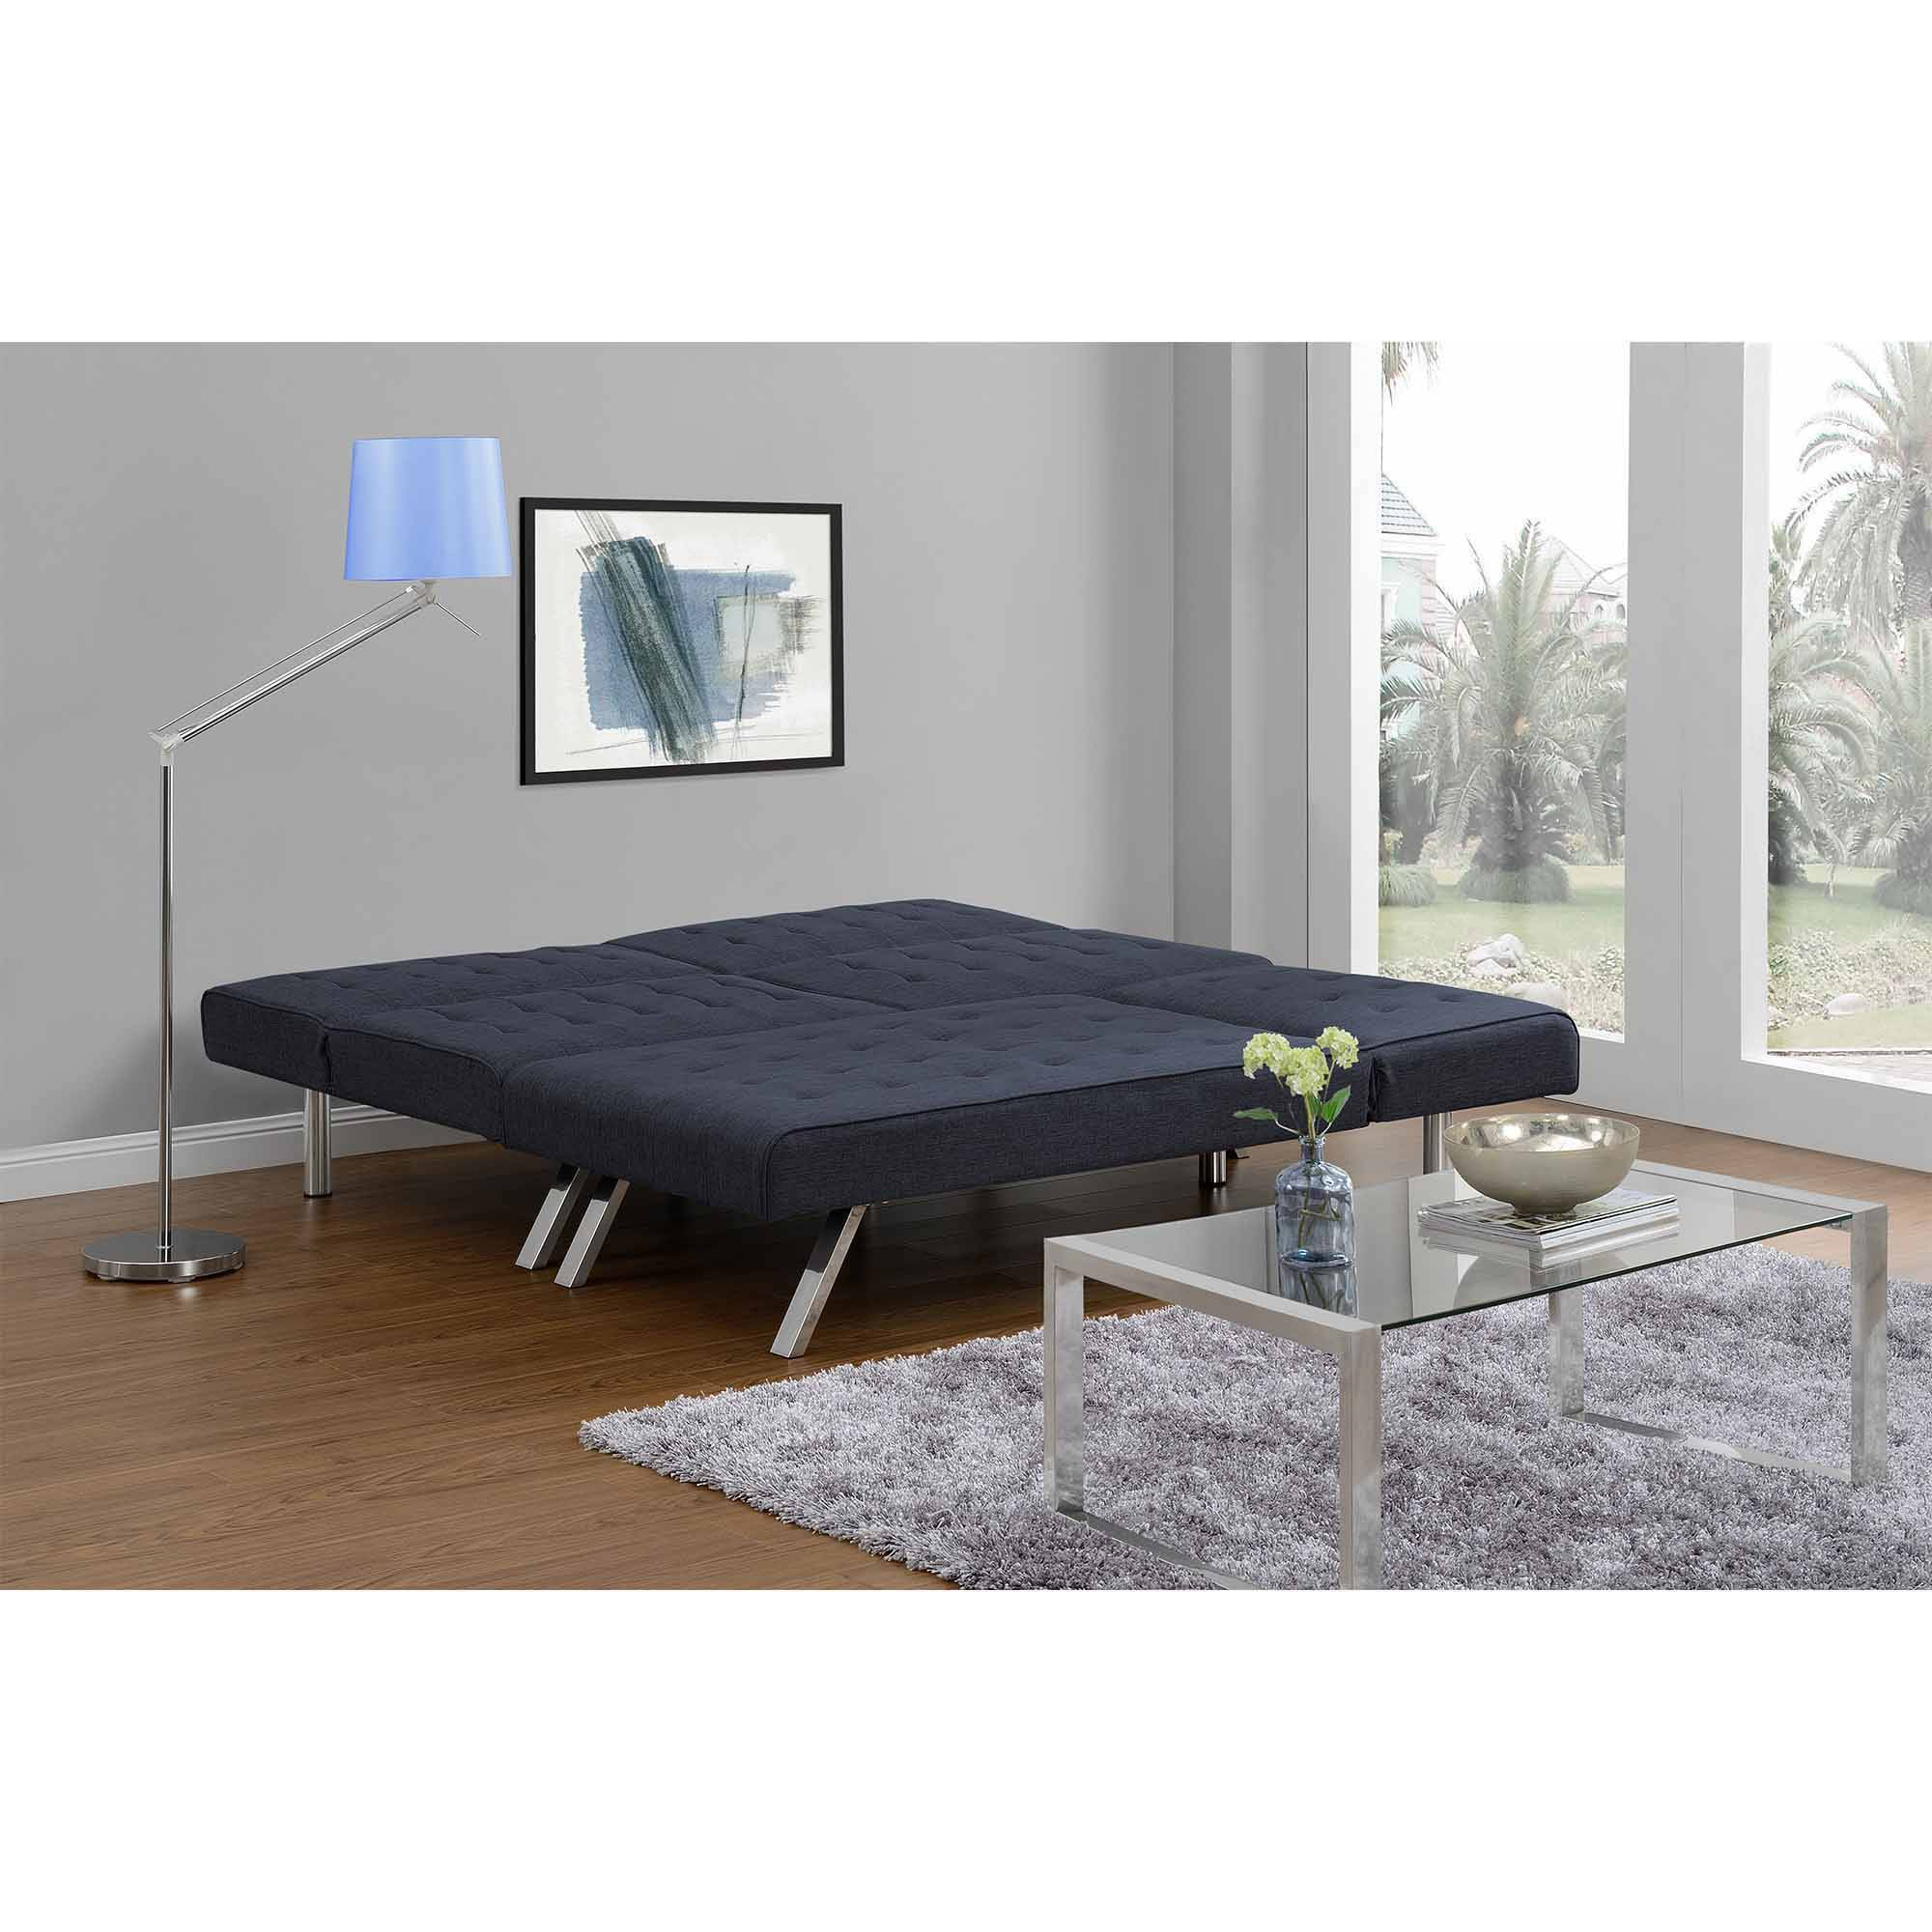 DHP Emily Futon Modern Chaise Lounger, Multiple Colors   Walmart.com